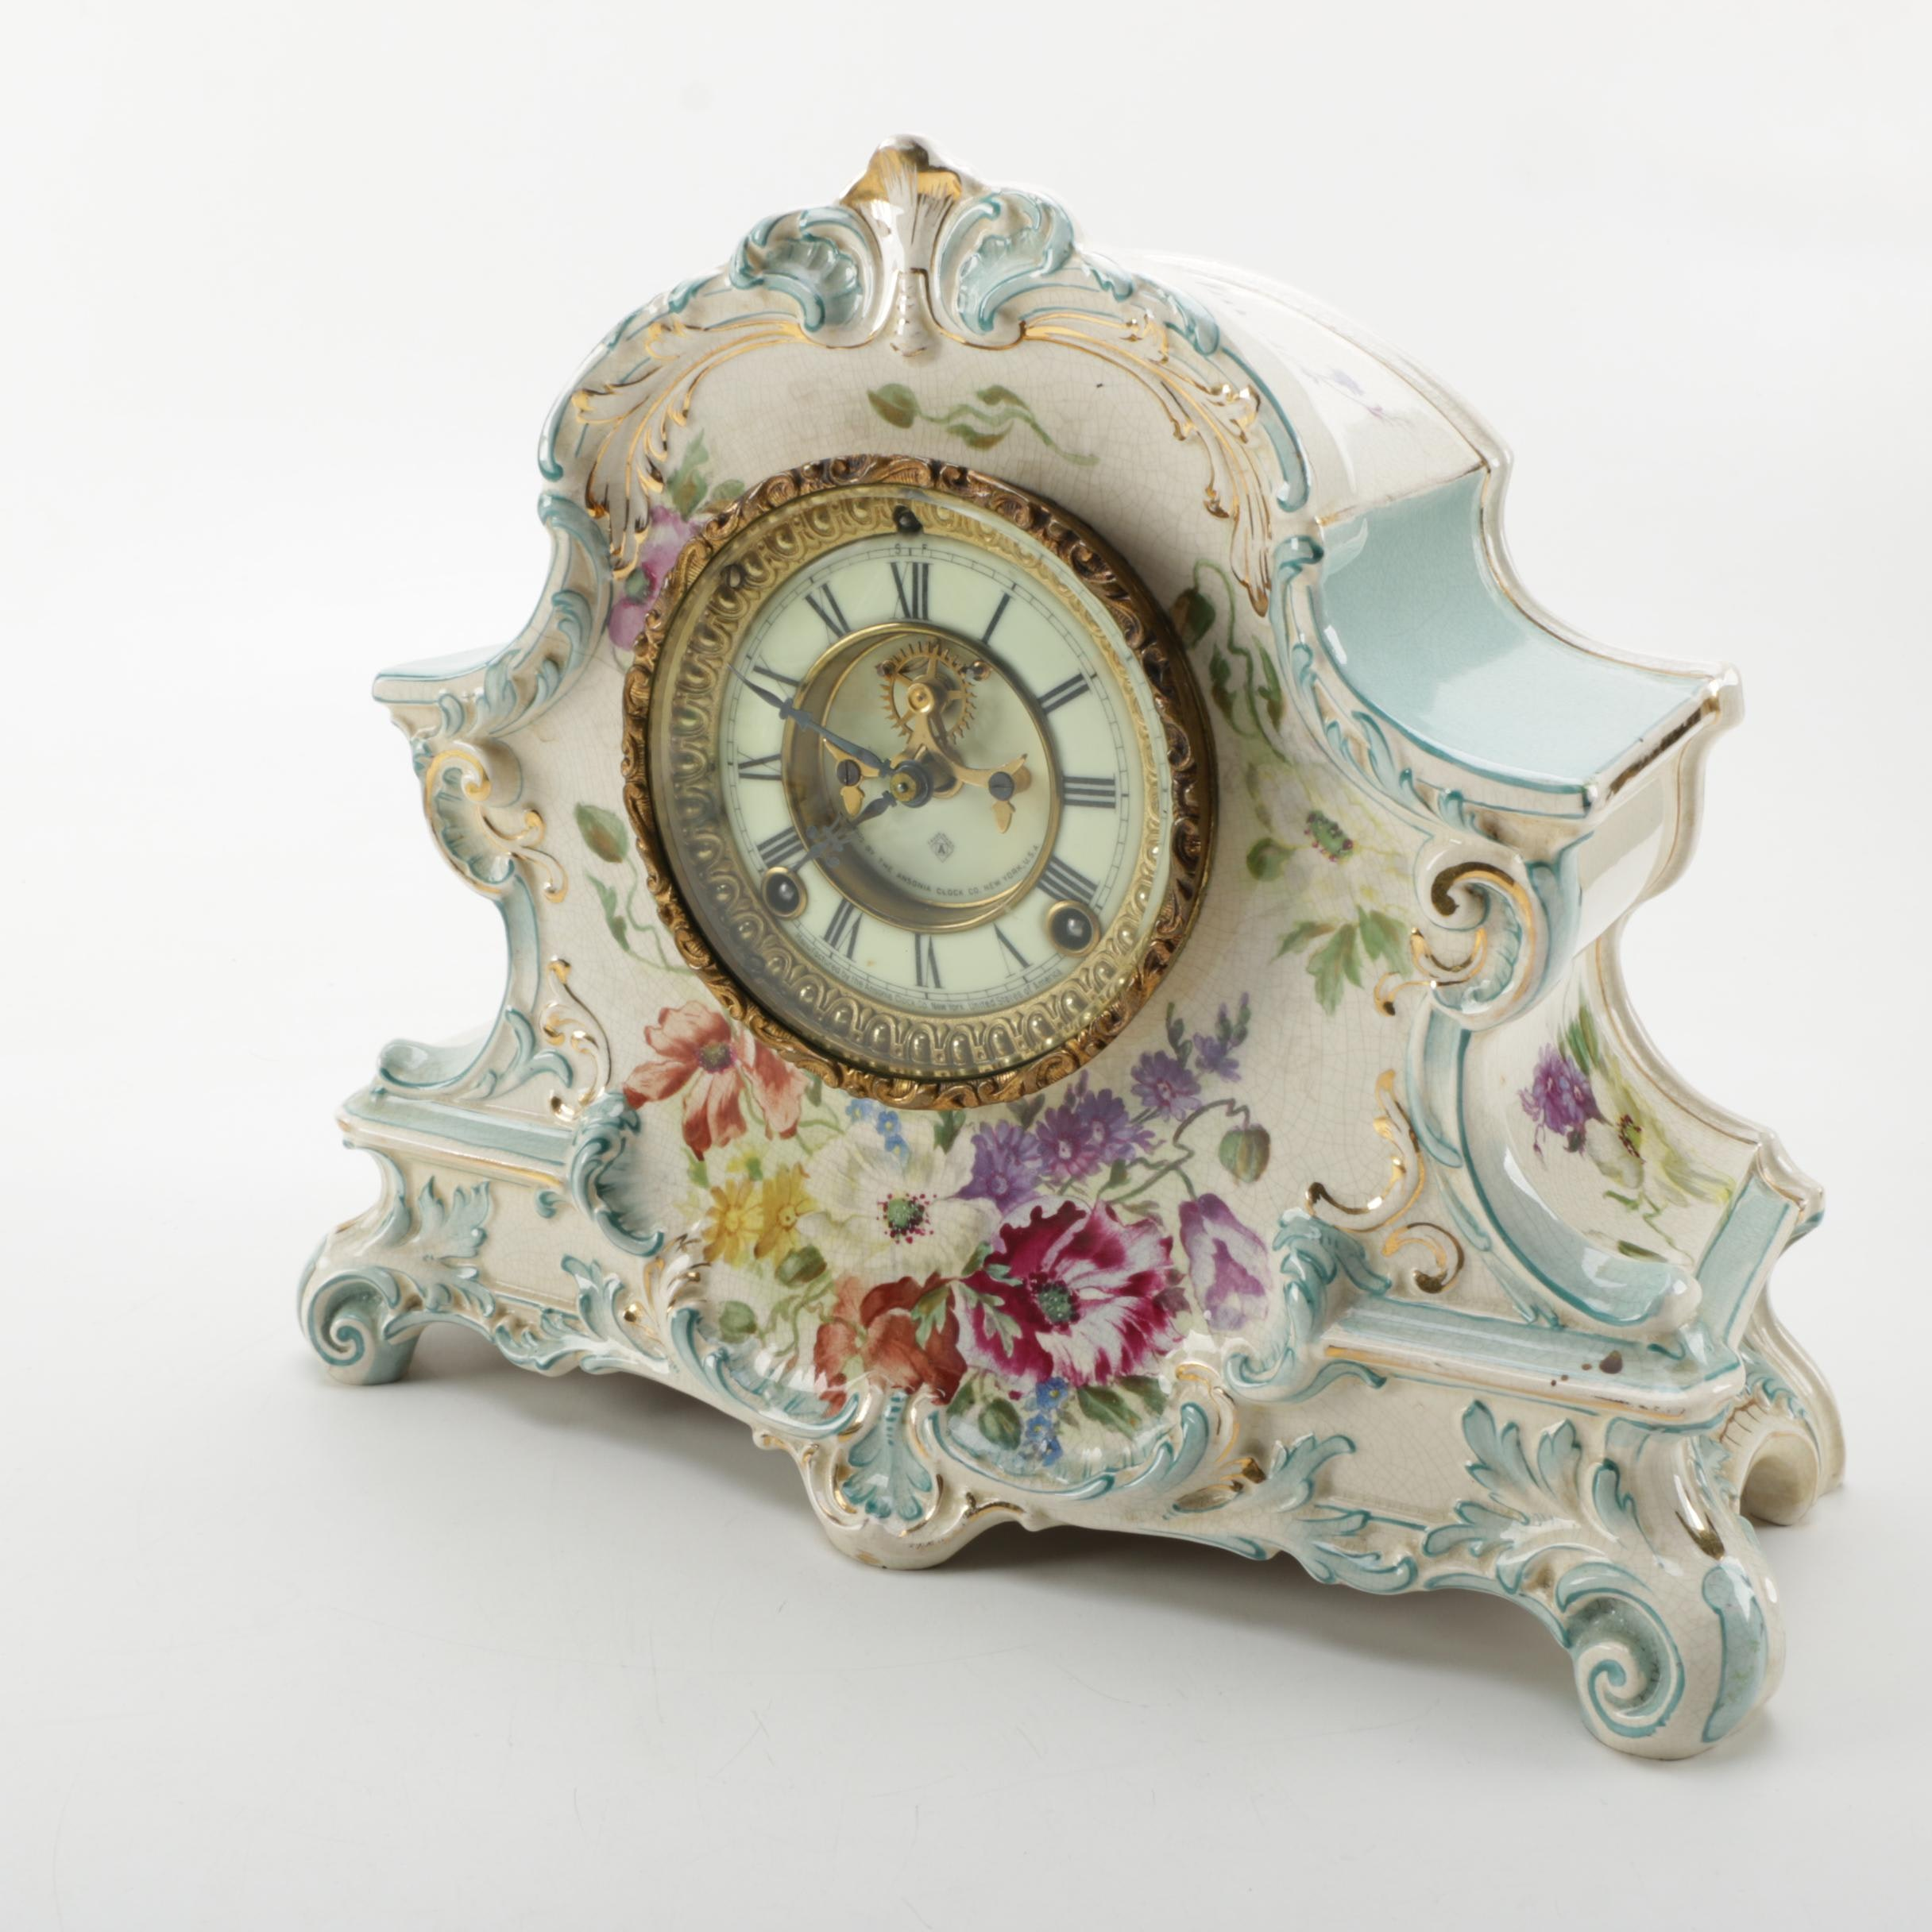 Ansonia Mantel Clock with a Royal Bonn Case